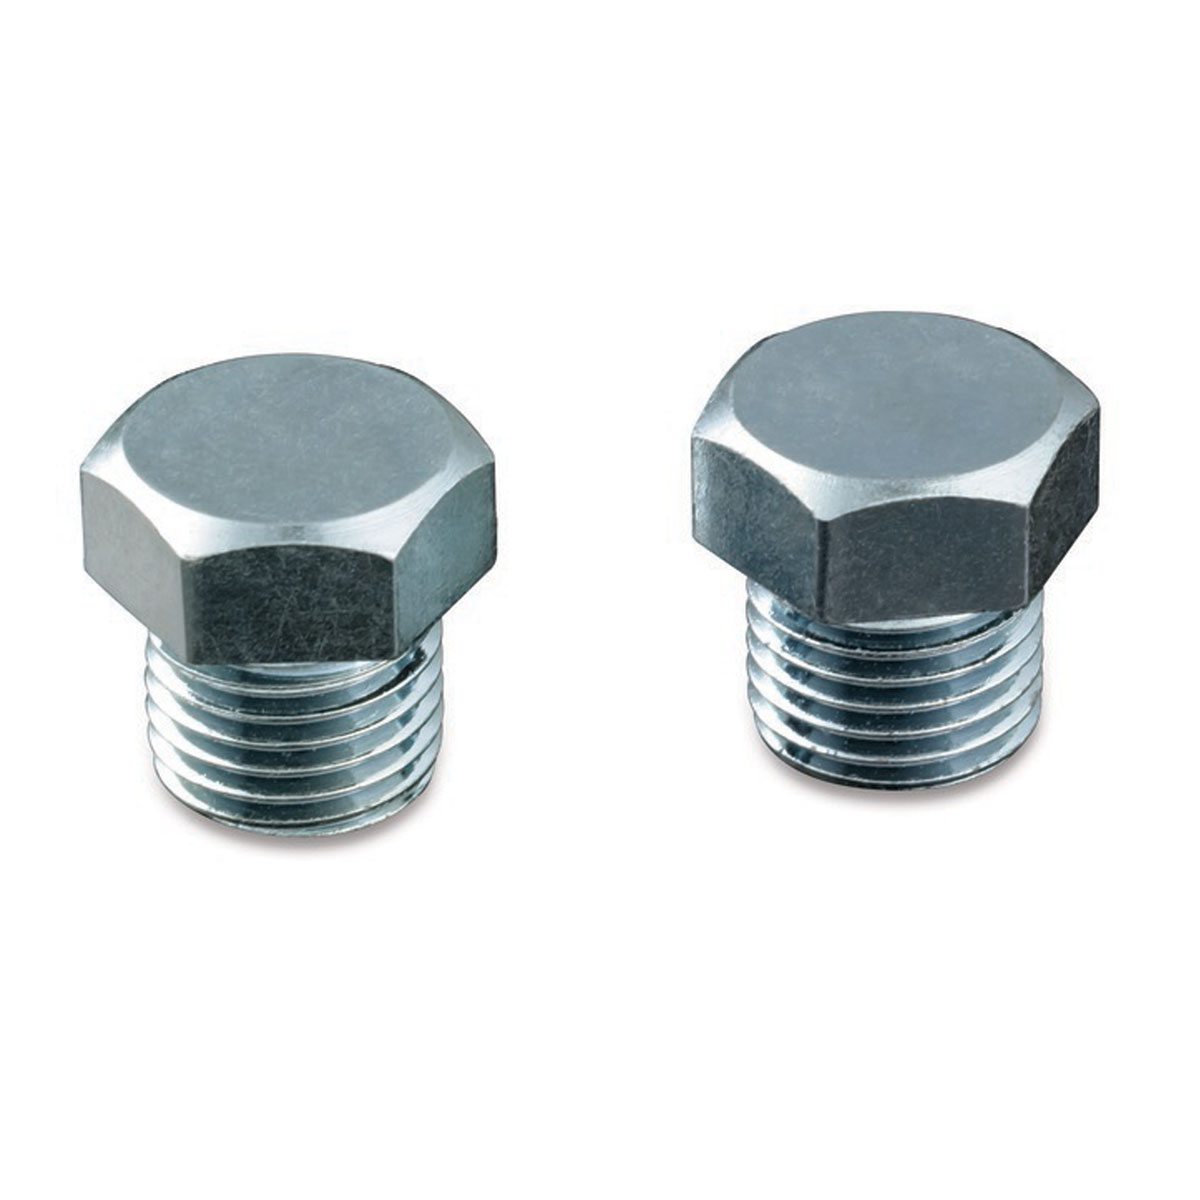 Kuryakyn 12mm 02 Sensor Bung Plugs